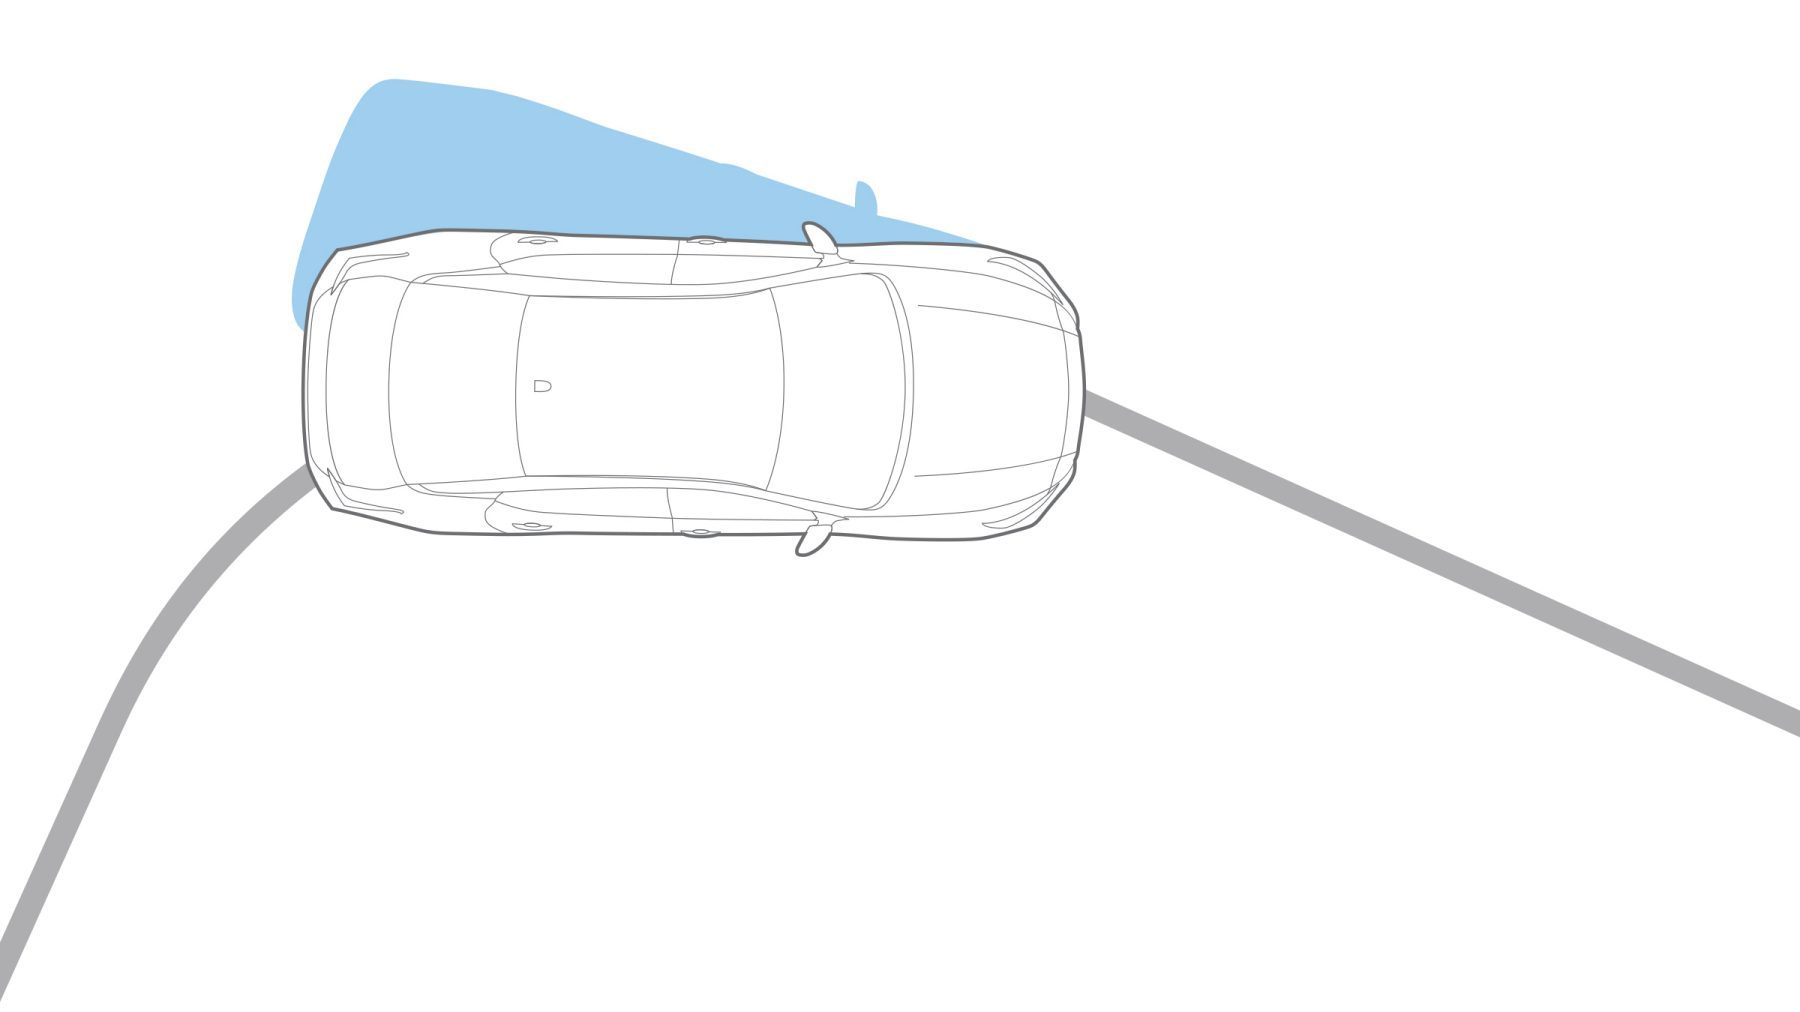 Nissan Altima stability control graphic